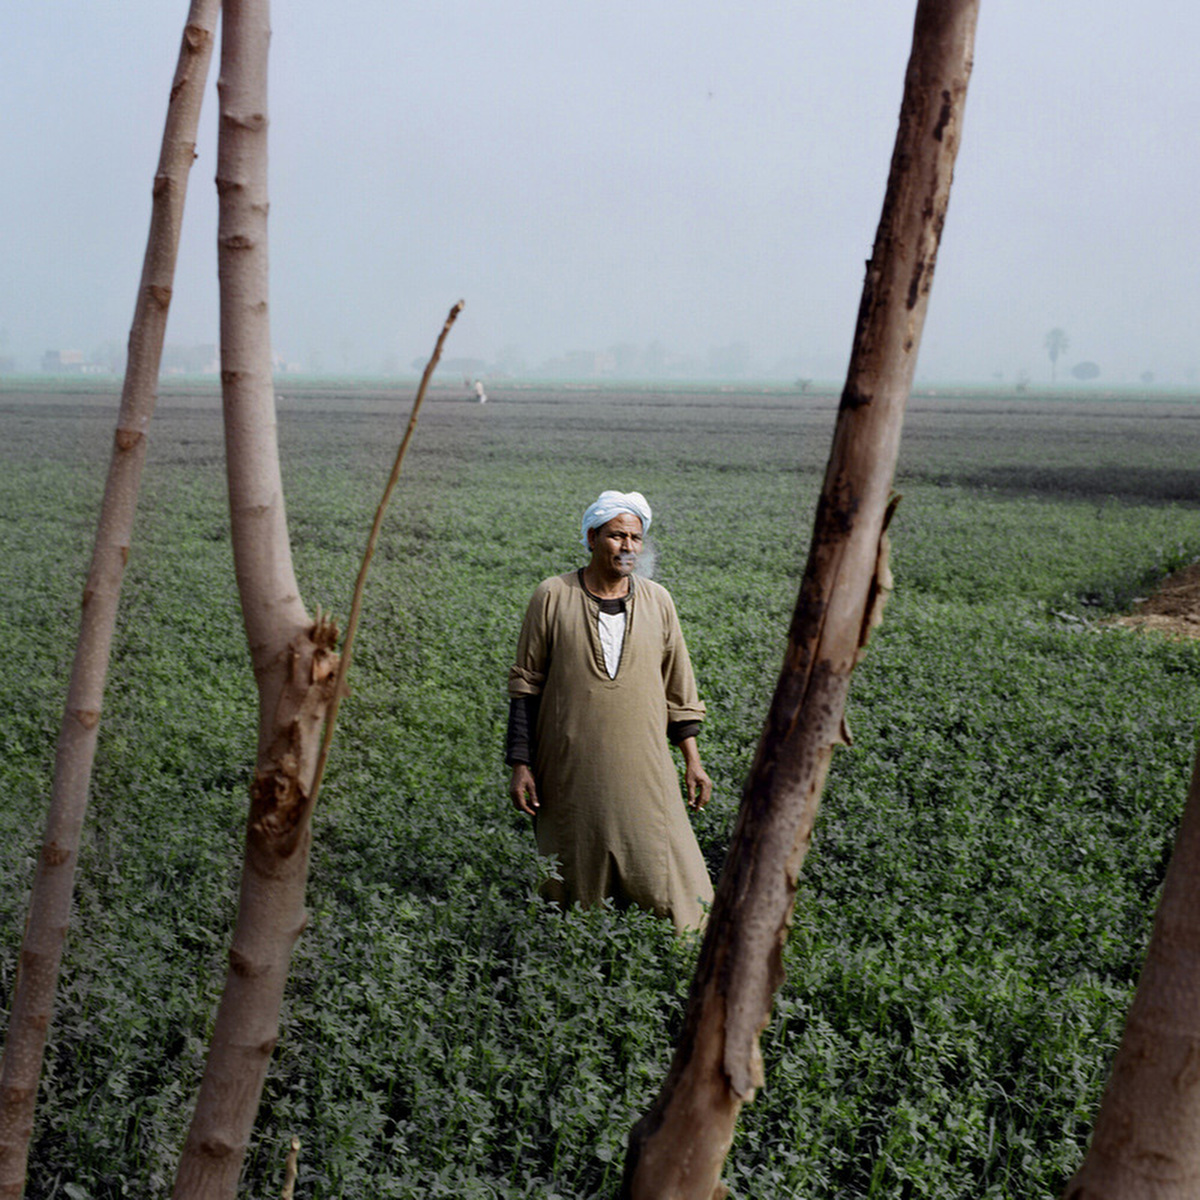 A farmer poses for a portrait on a land where he works.